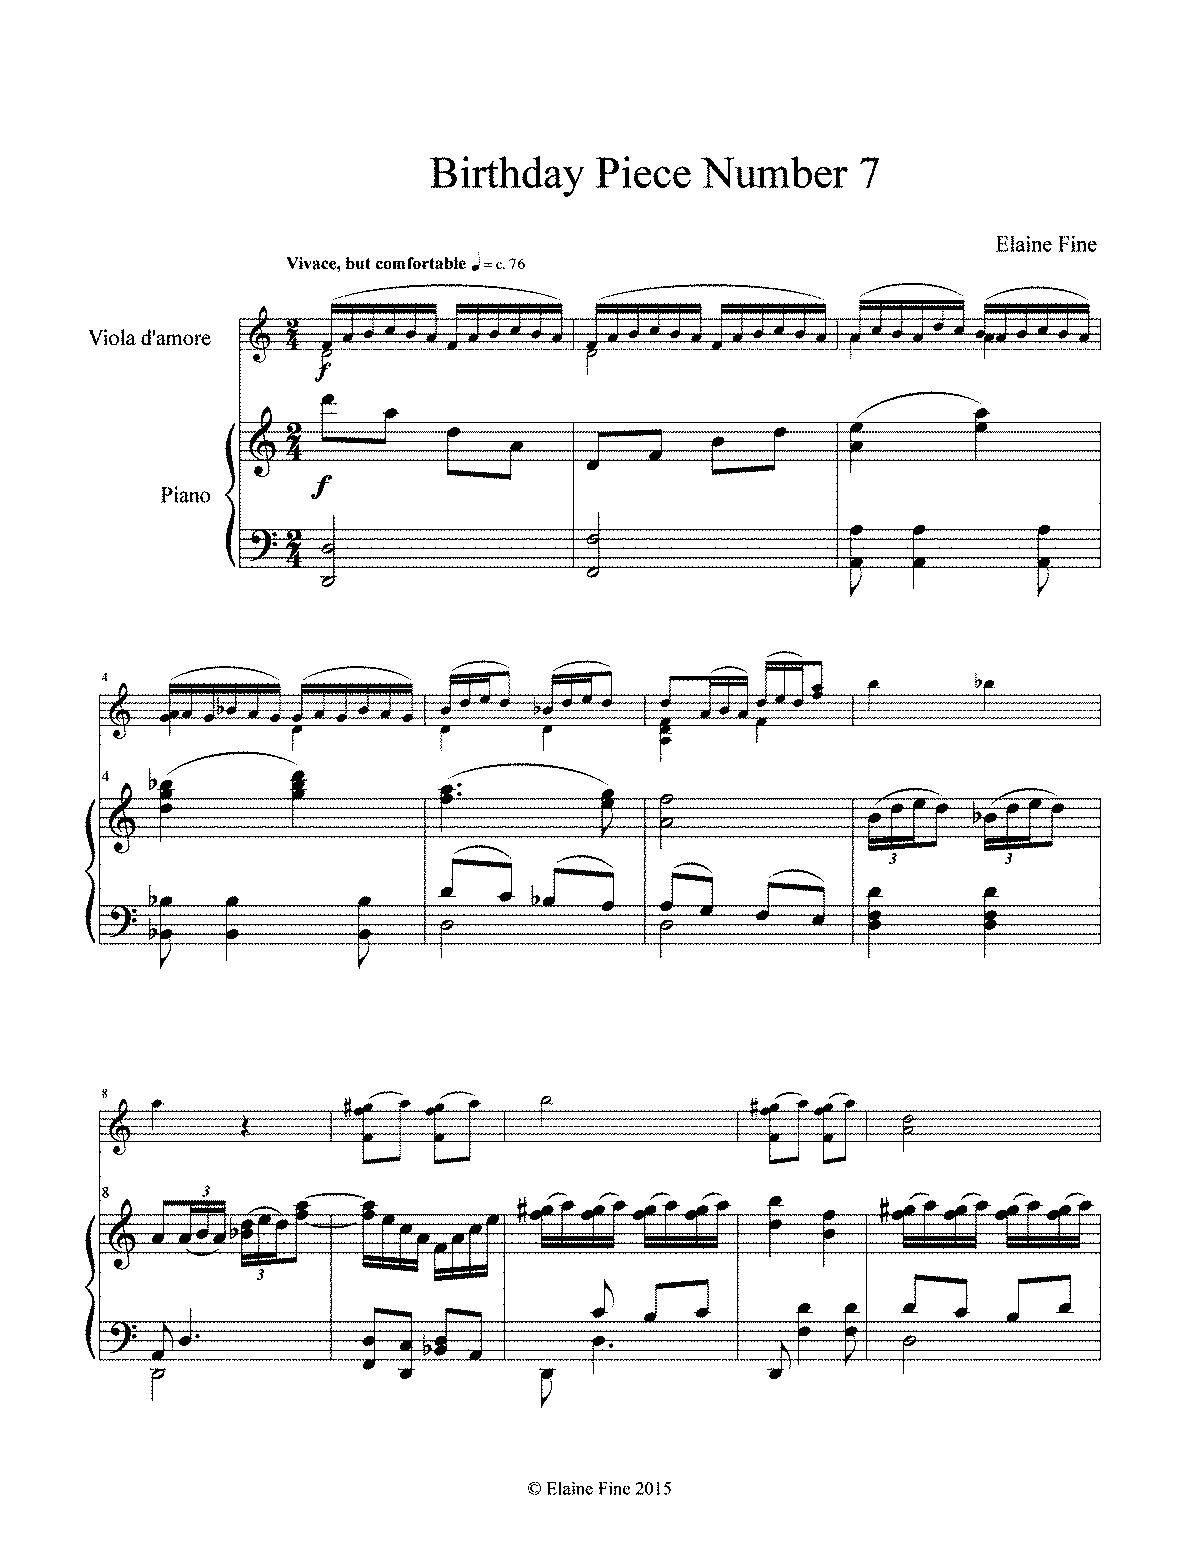 PMLP606485-Birthday Piece Number 7 Score and Parts.pdf